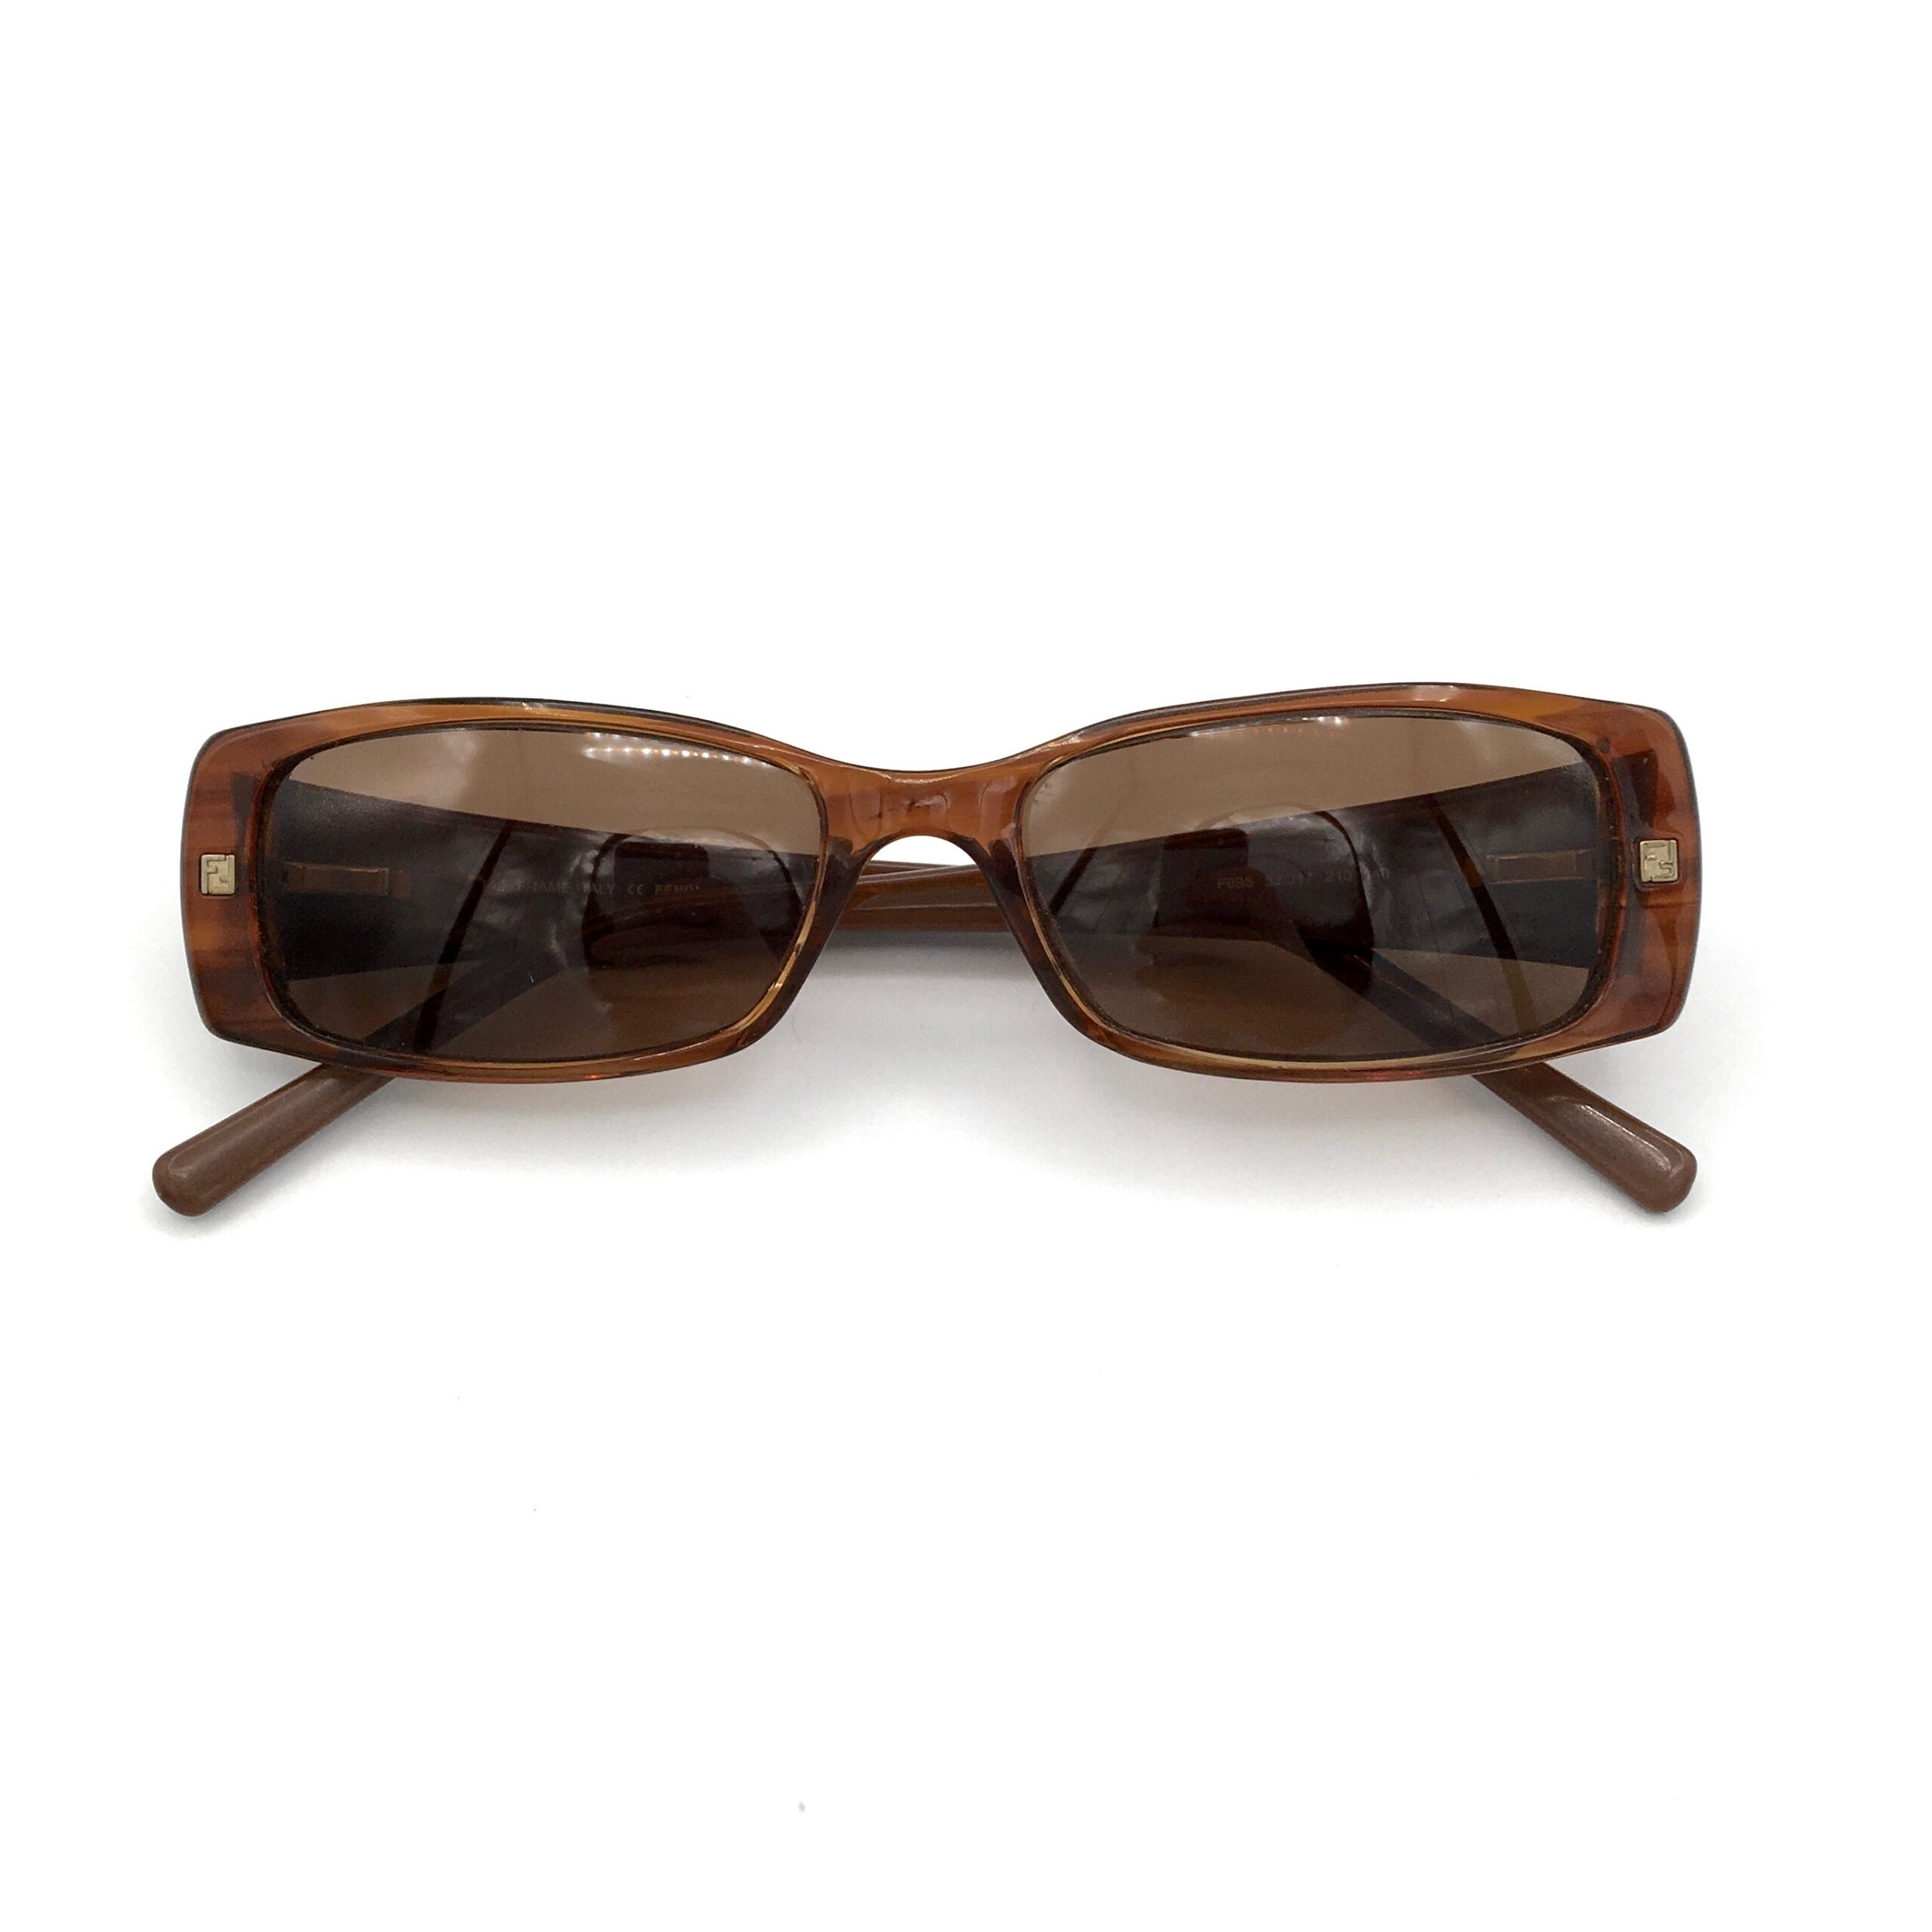 Fendi Print Sunglasses